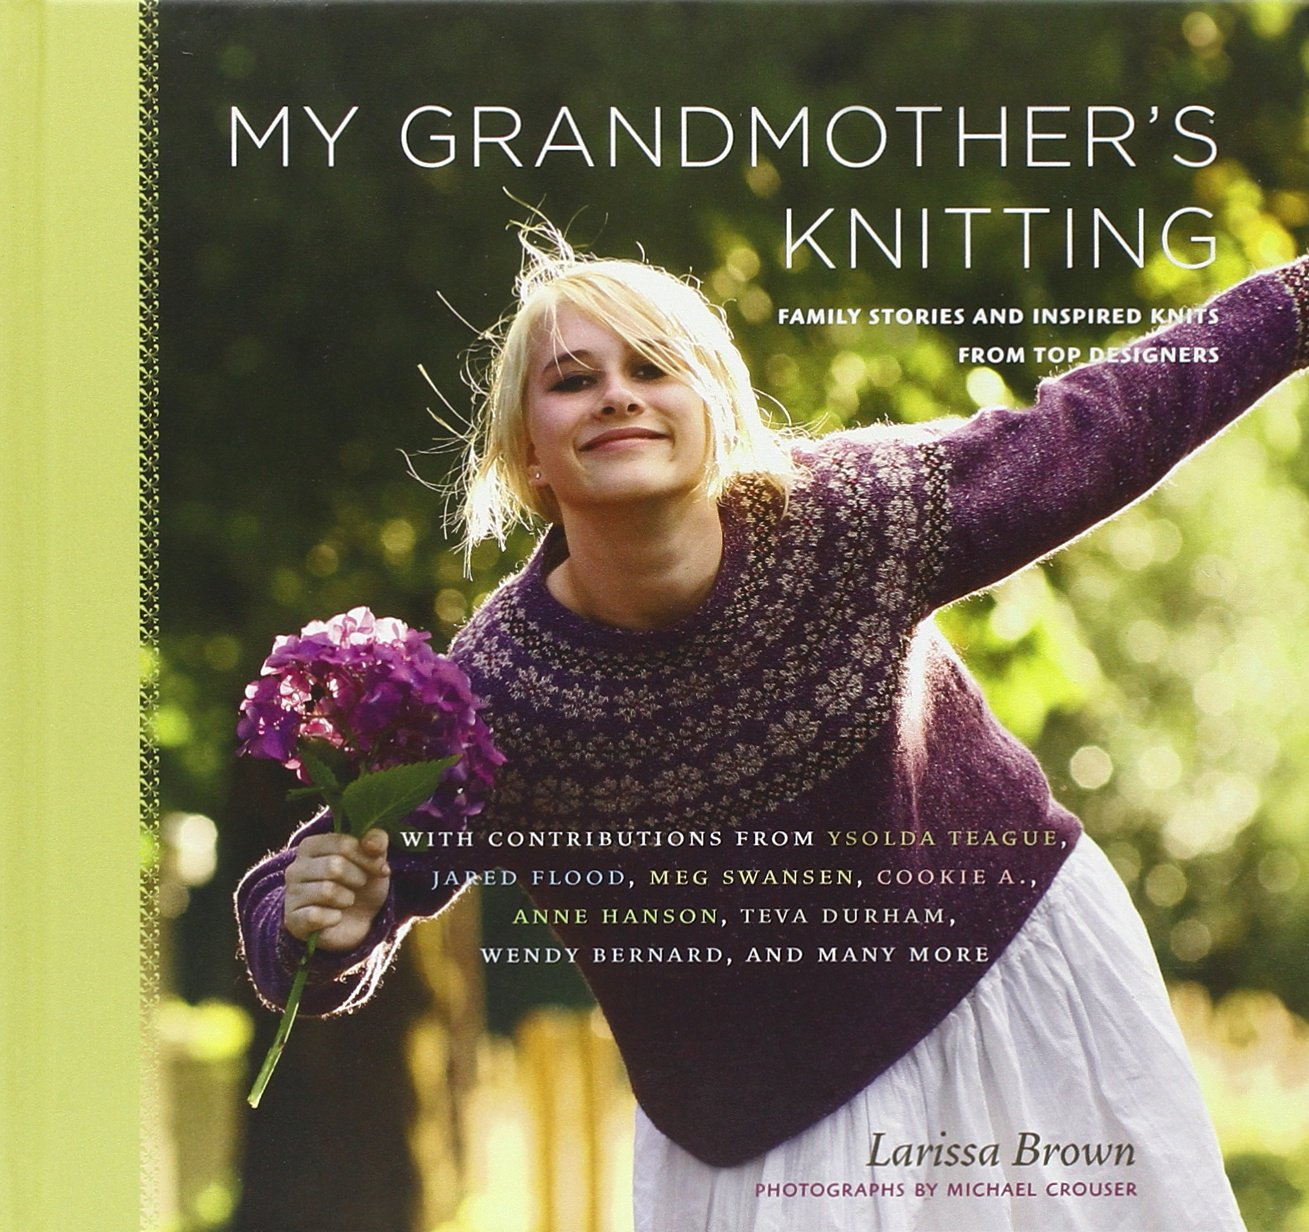 My Grandmother's Knitting: Family Stories and Inspired Knits from Top Designers